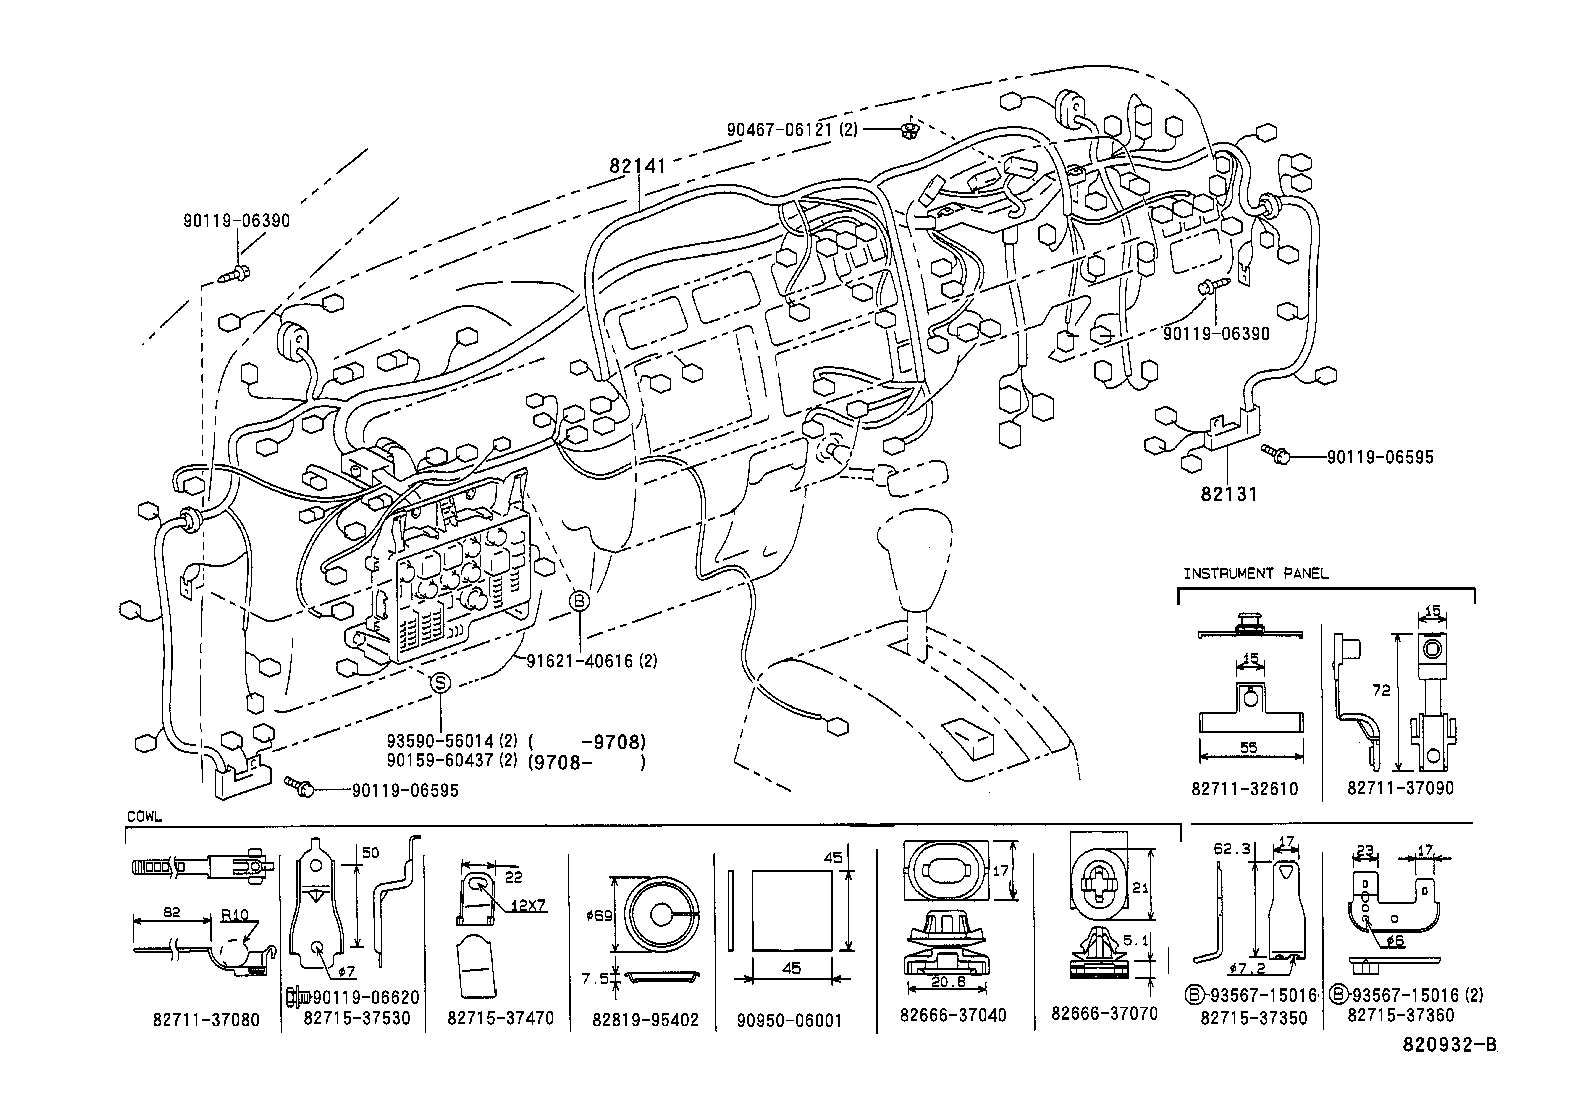 Dyna Ignition Coils Wiring Diagram. Diagram. Auto Wiring